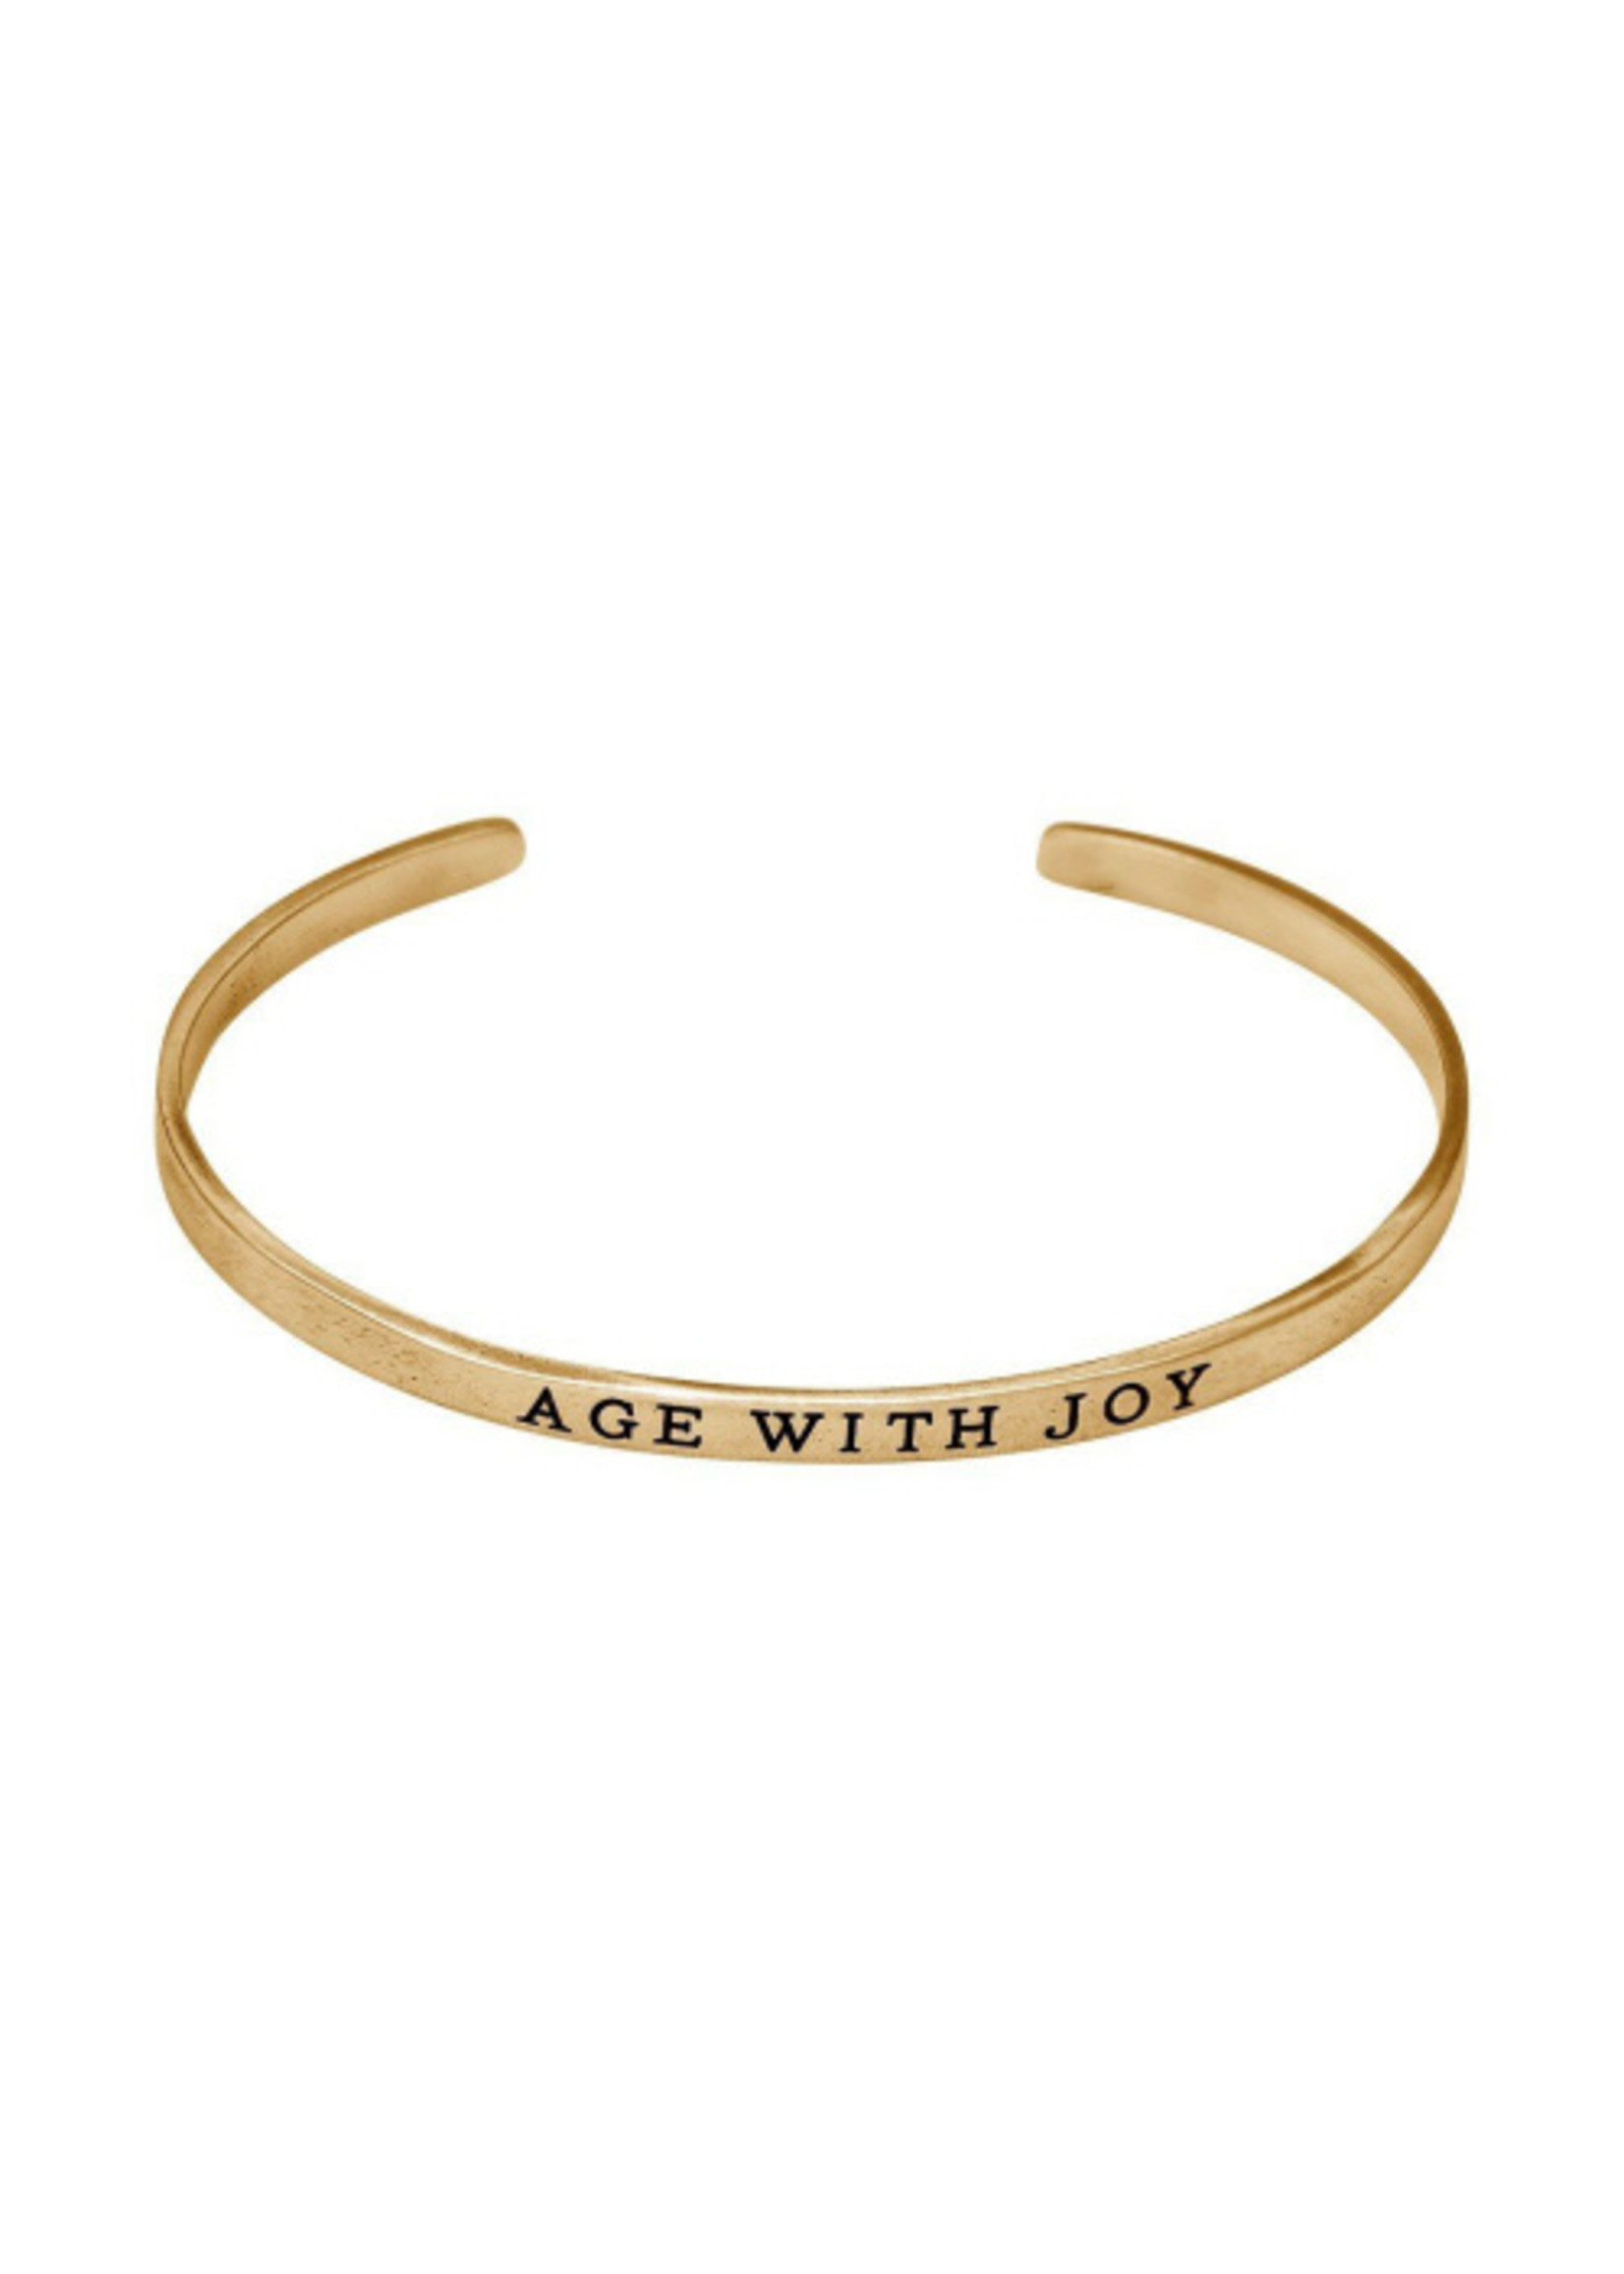 Waxing Poetic Age With Joy Cuff